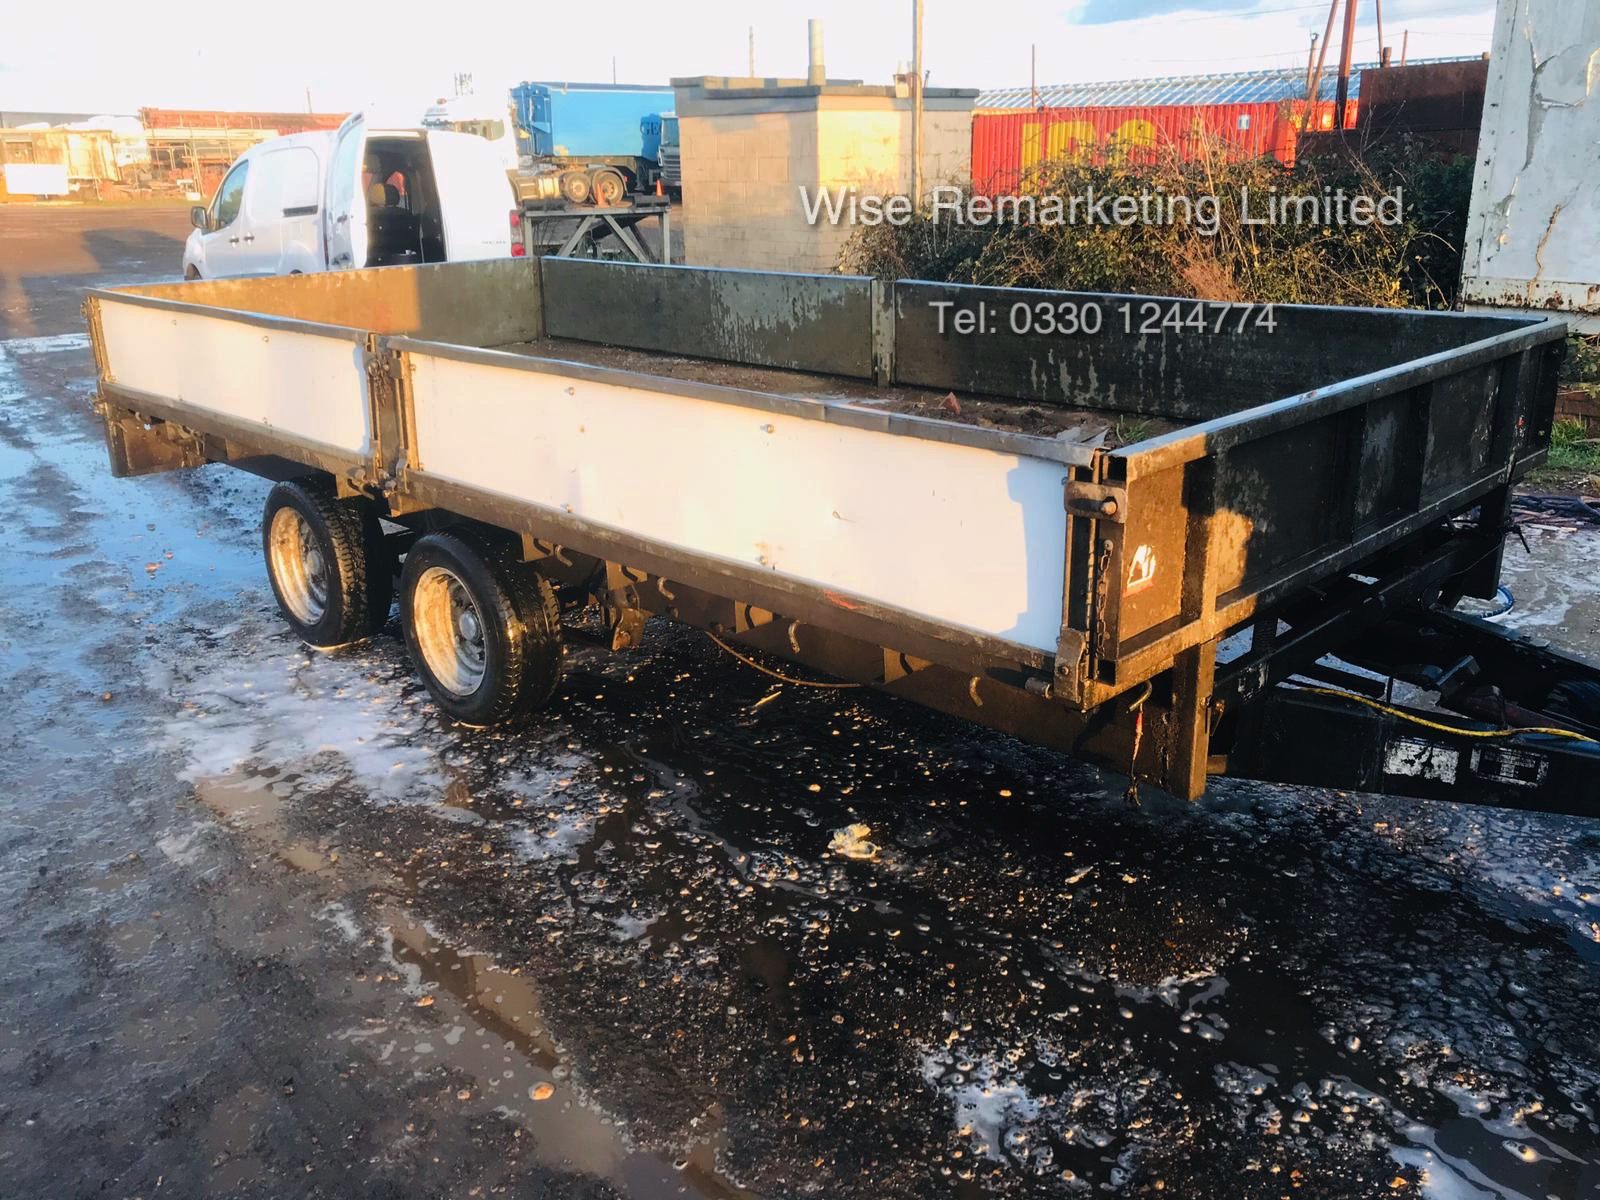 Ifor Williams 14ft Double Wheel Dropside Trailer - 2004/5 Year - Image 2 of 6